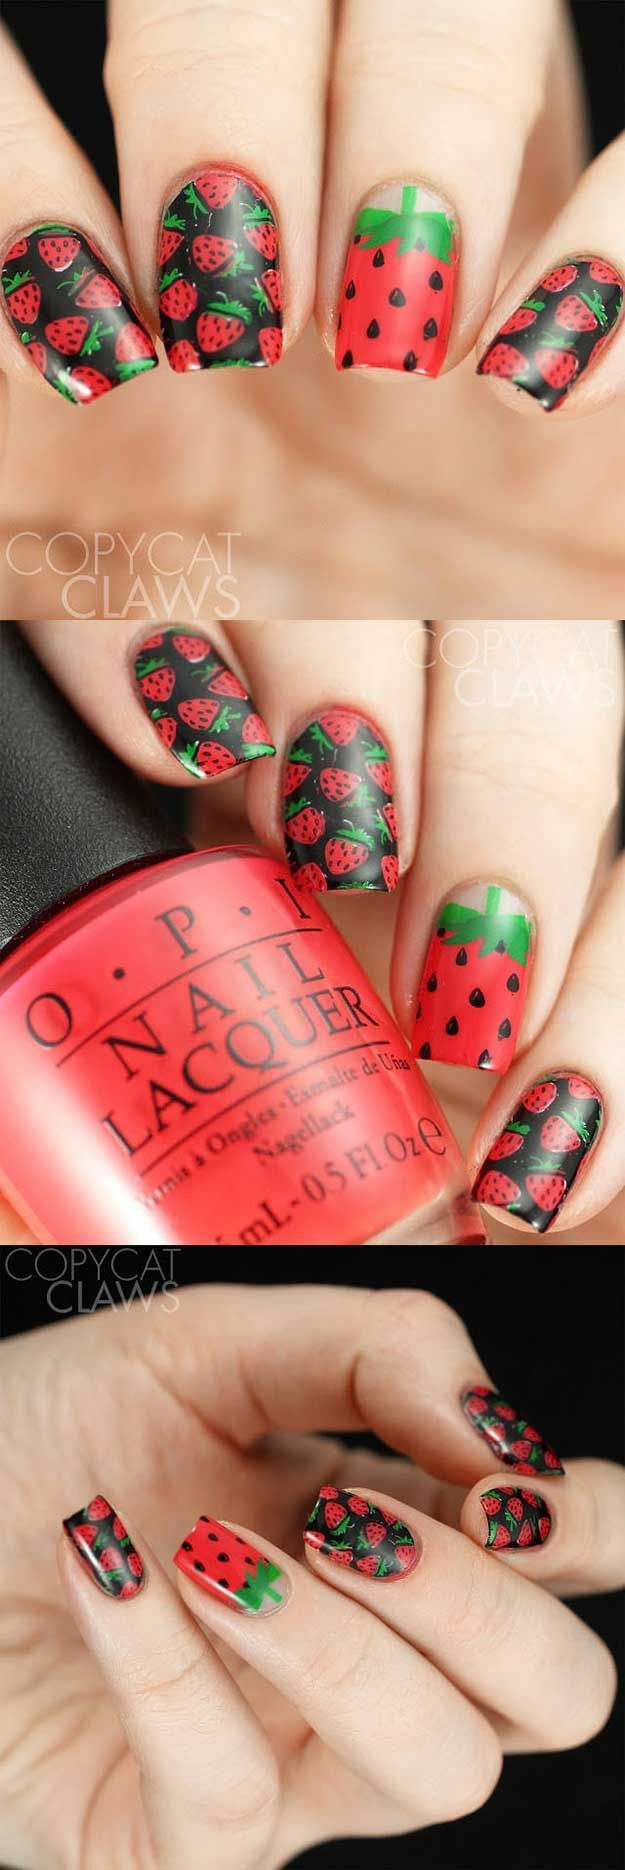 cool summer nail art ideas in nails spring pinterest